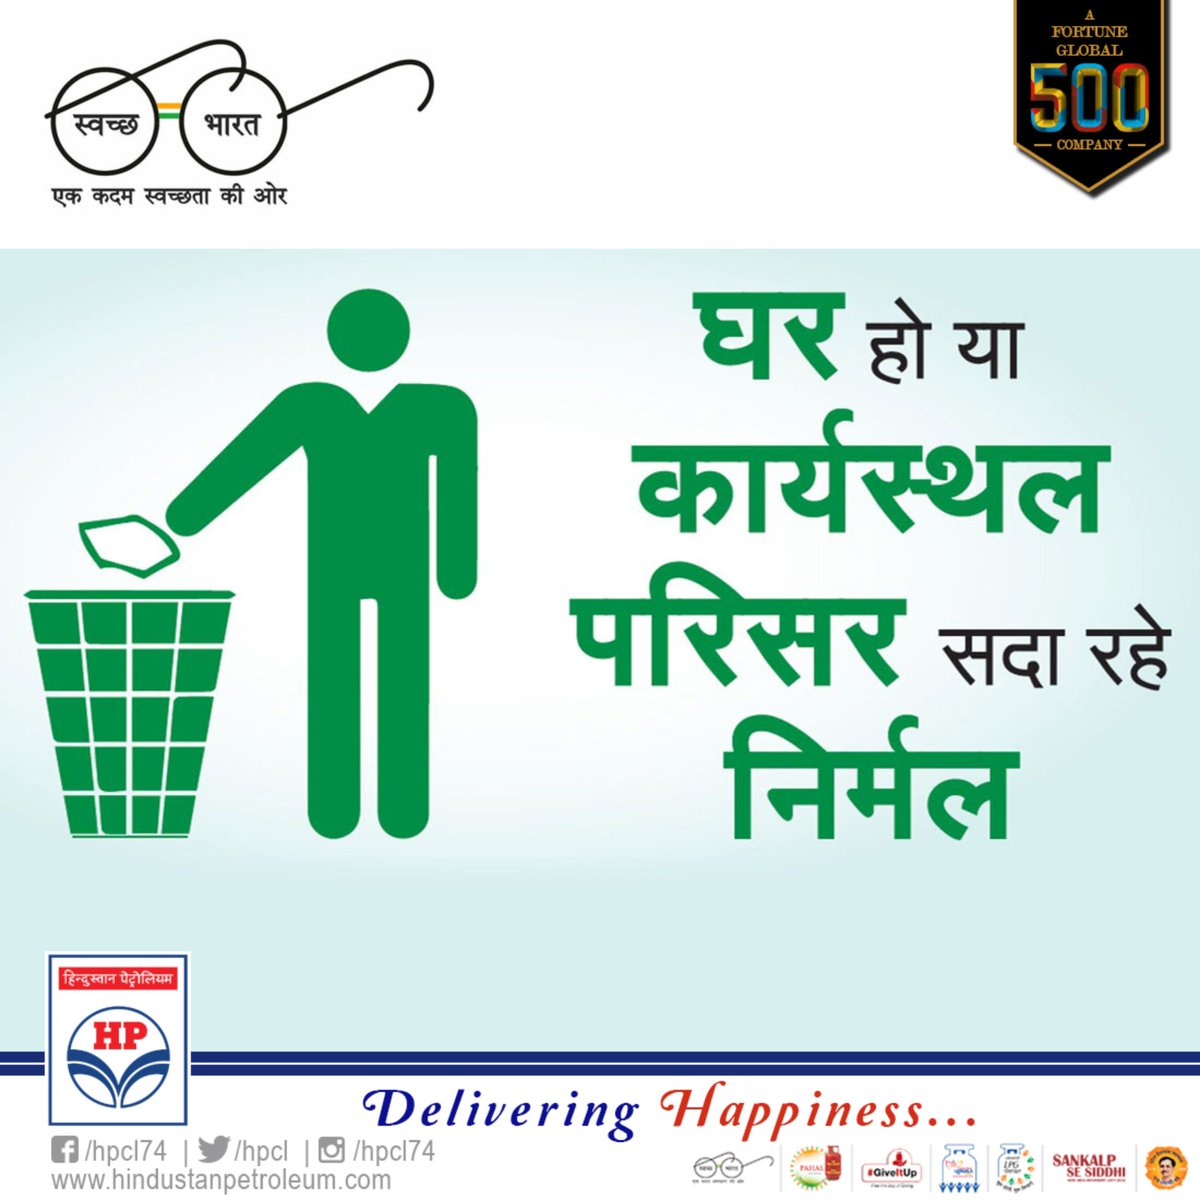 Let us take a pledge to save the environment by keeping our surrounding clean. #SwachhBharat <br>http://pic.twitter.com/KOfNKj4eCa